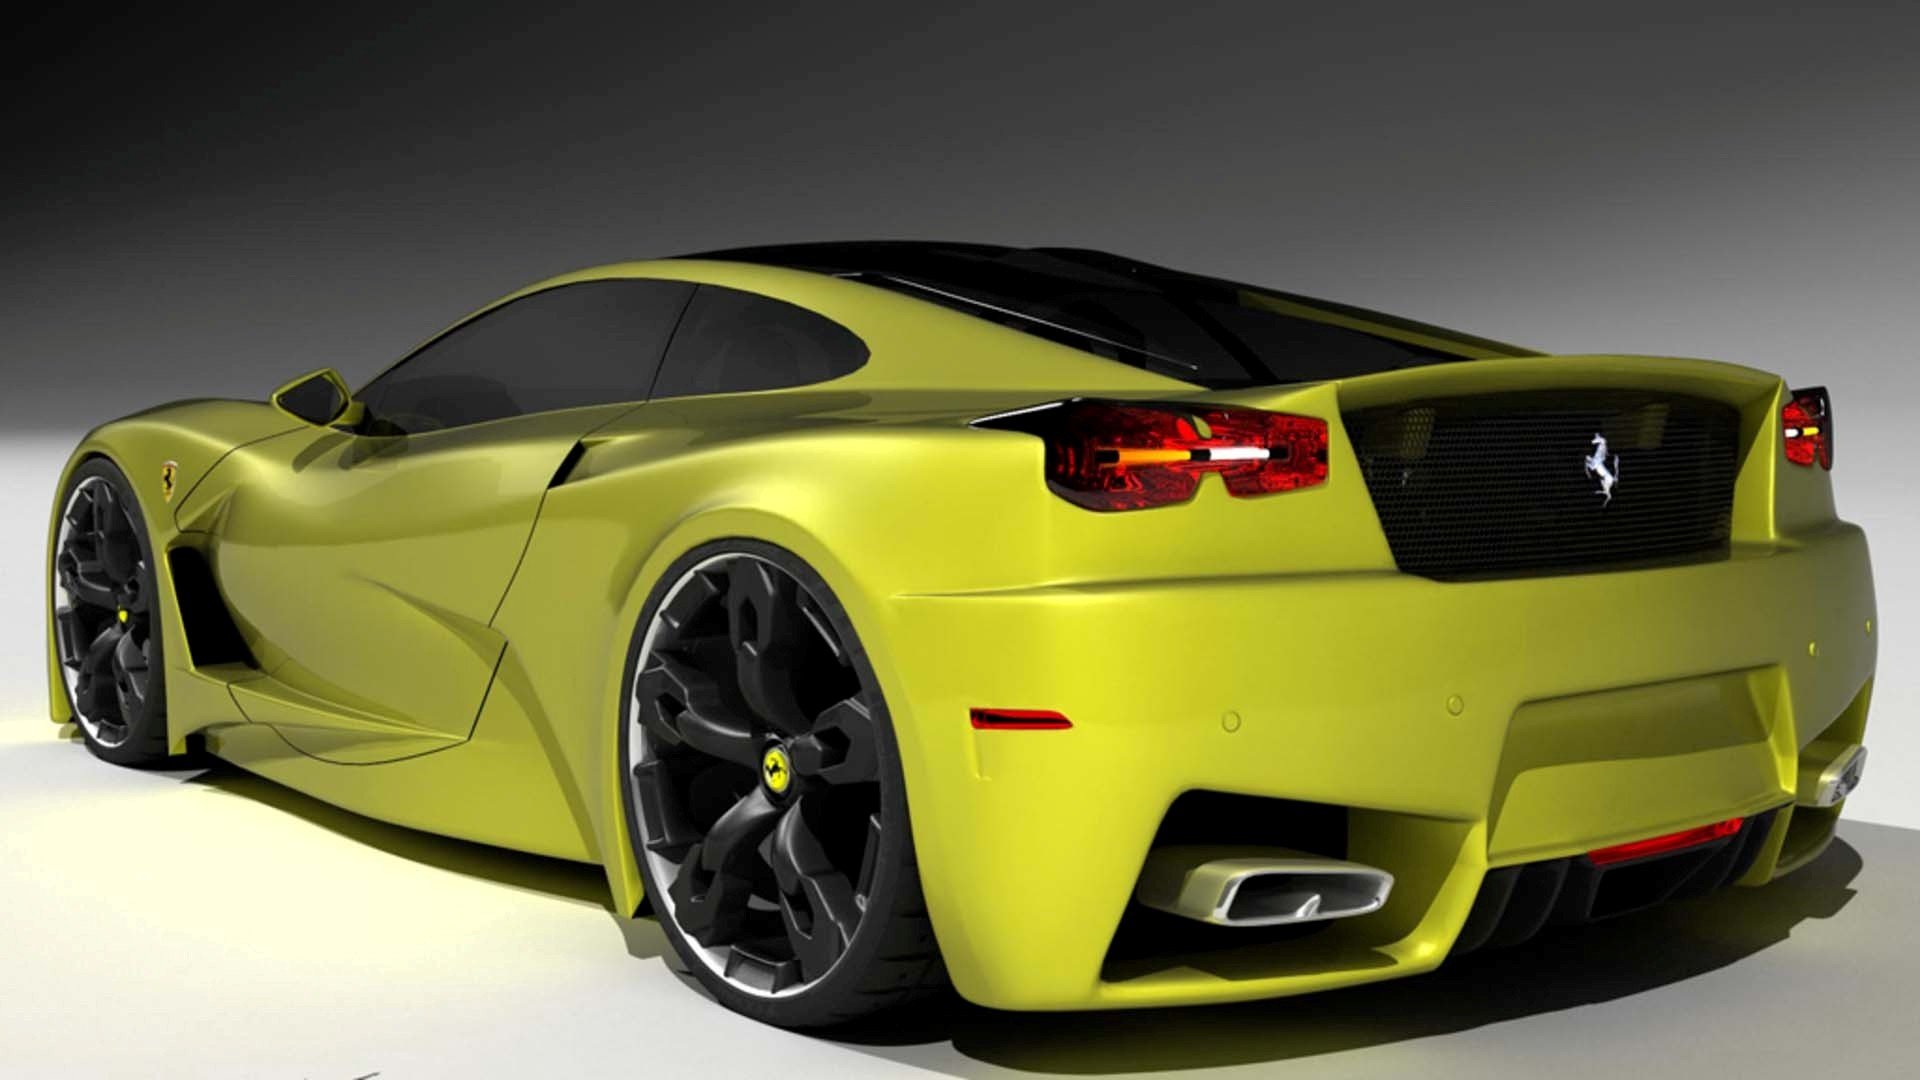 Cool Car Wallpapers HD Wallpapercraft 1920x1080